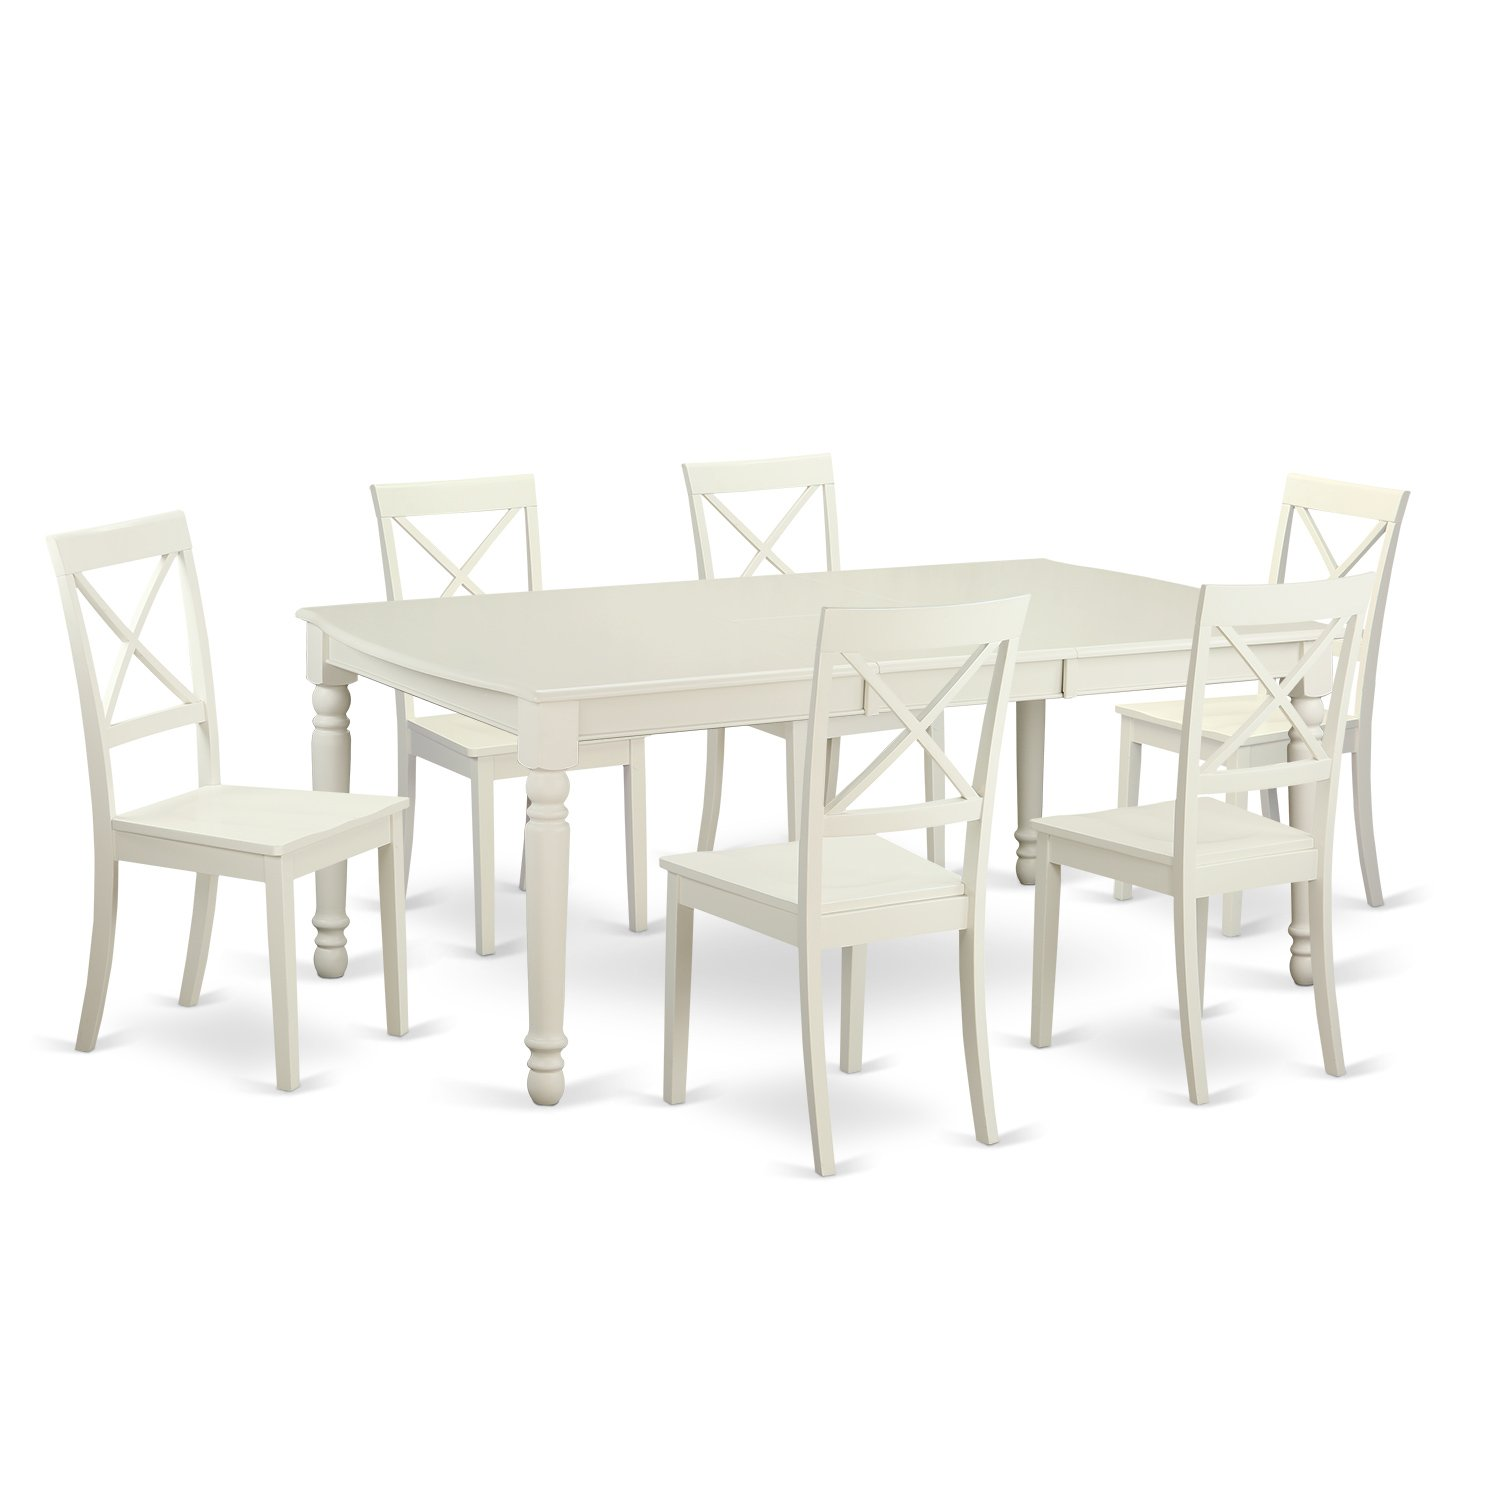 DOBO7-LWH-W 7 PC Dining room set for 6-Dinette Table and 6 Dining Chairs